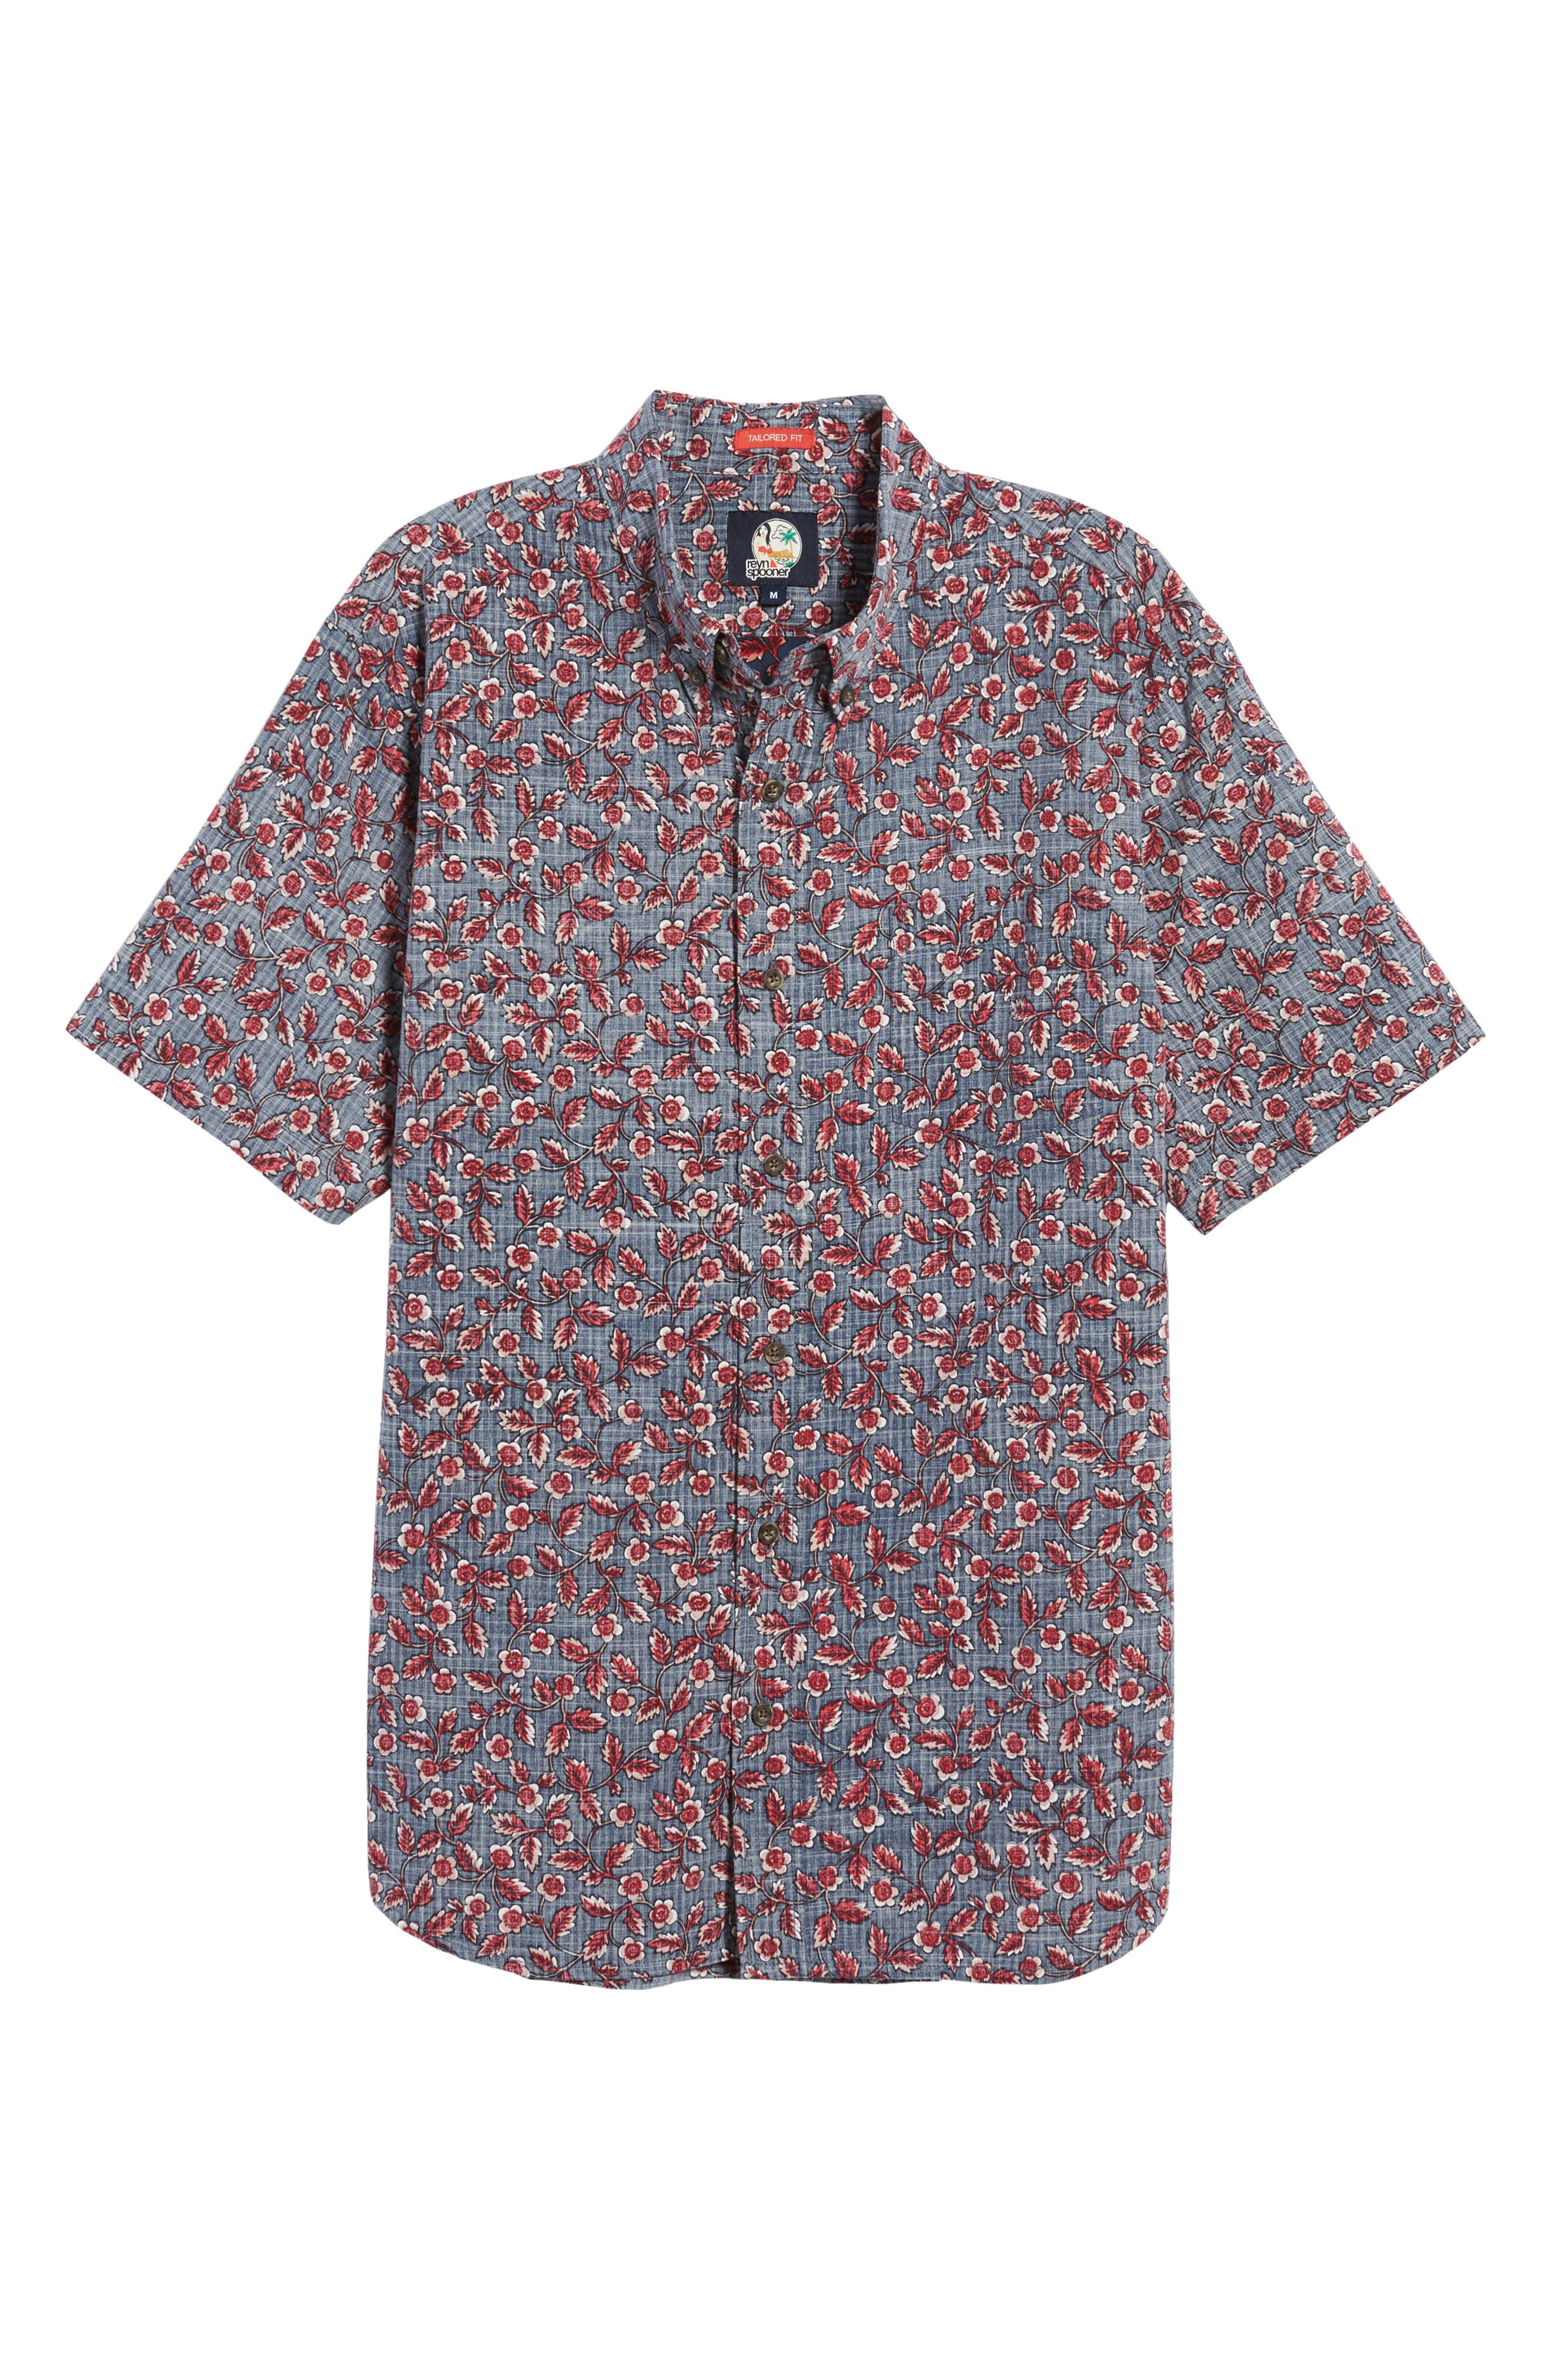 Upcountry Floral Regular Fit Sport Shirt,                             Alternate thumbnail 6, color,                             410